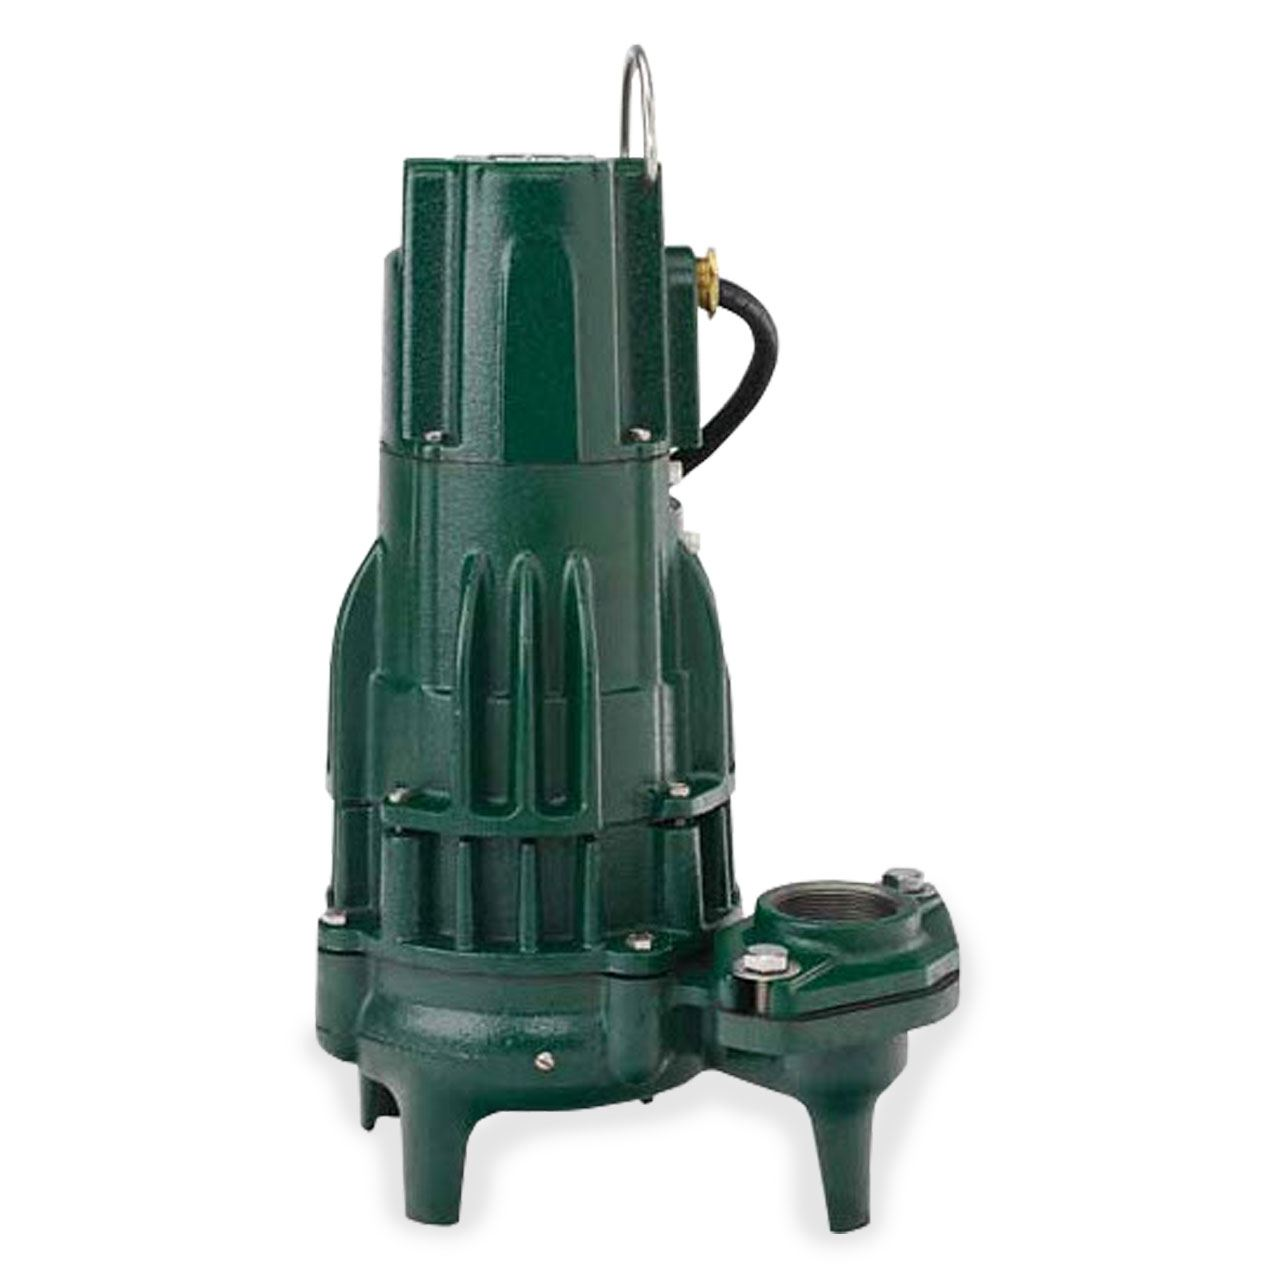 Zoeller Zoeller 295 0004 Model E295 High Head Sewage Dewatering Sewer Pump  System Zoeller Submersible Pump Wiring Diagram